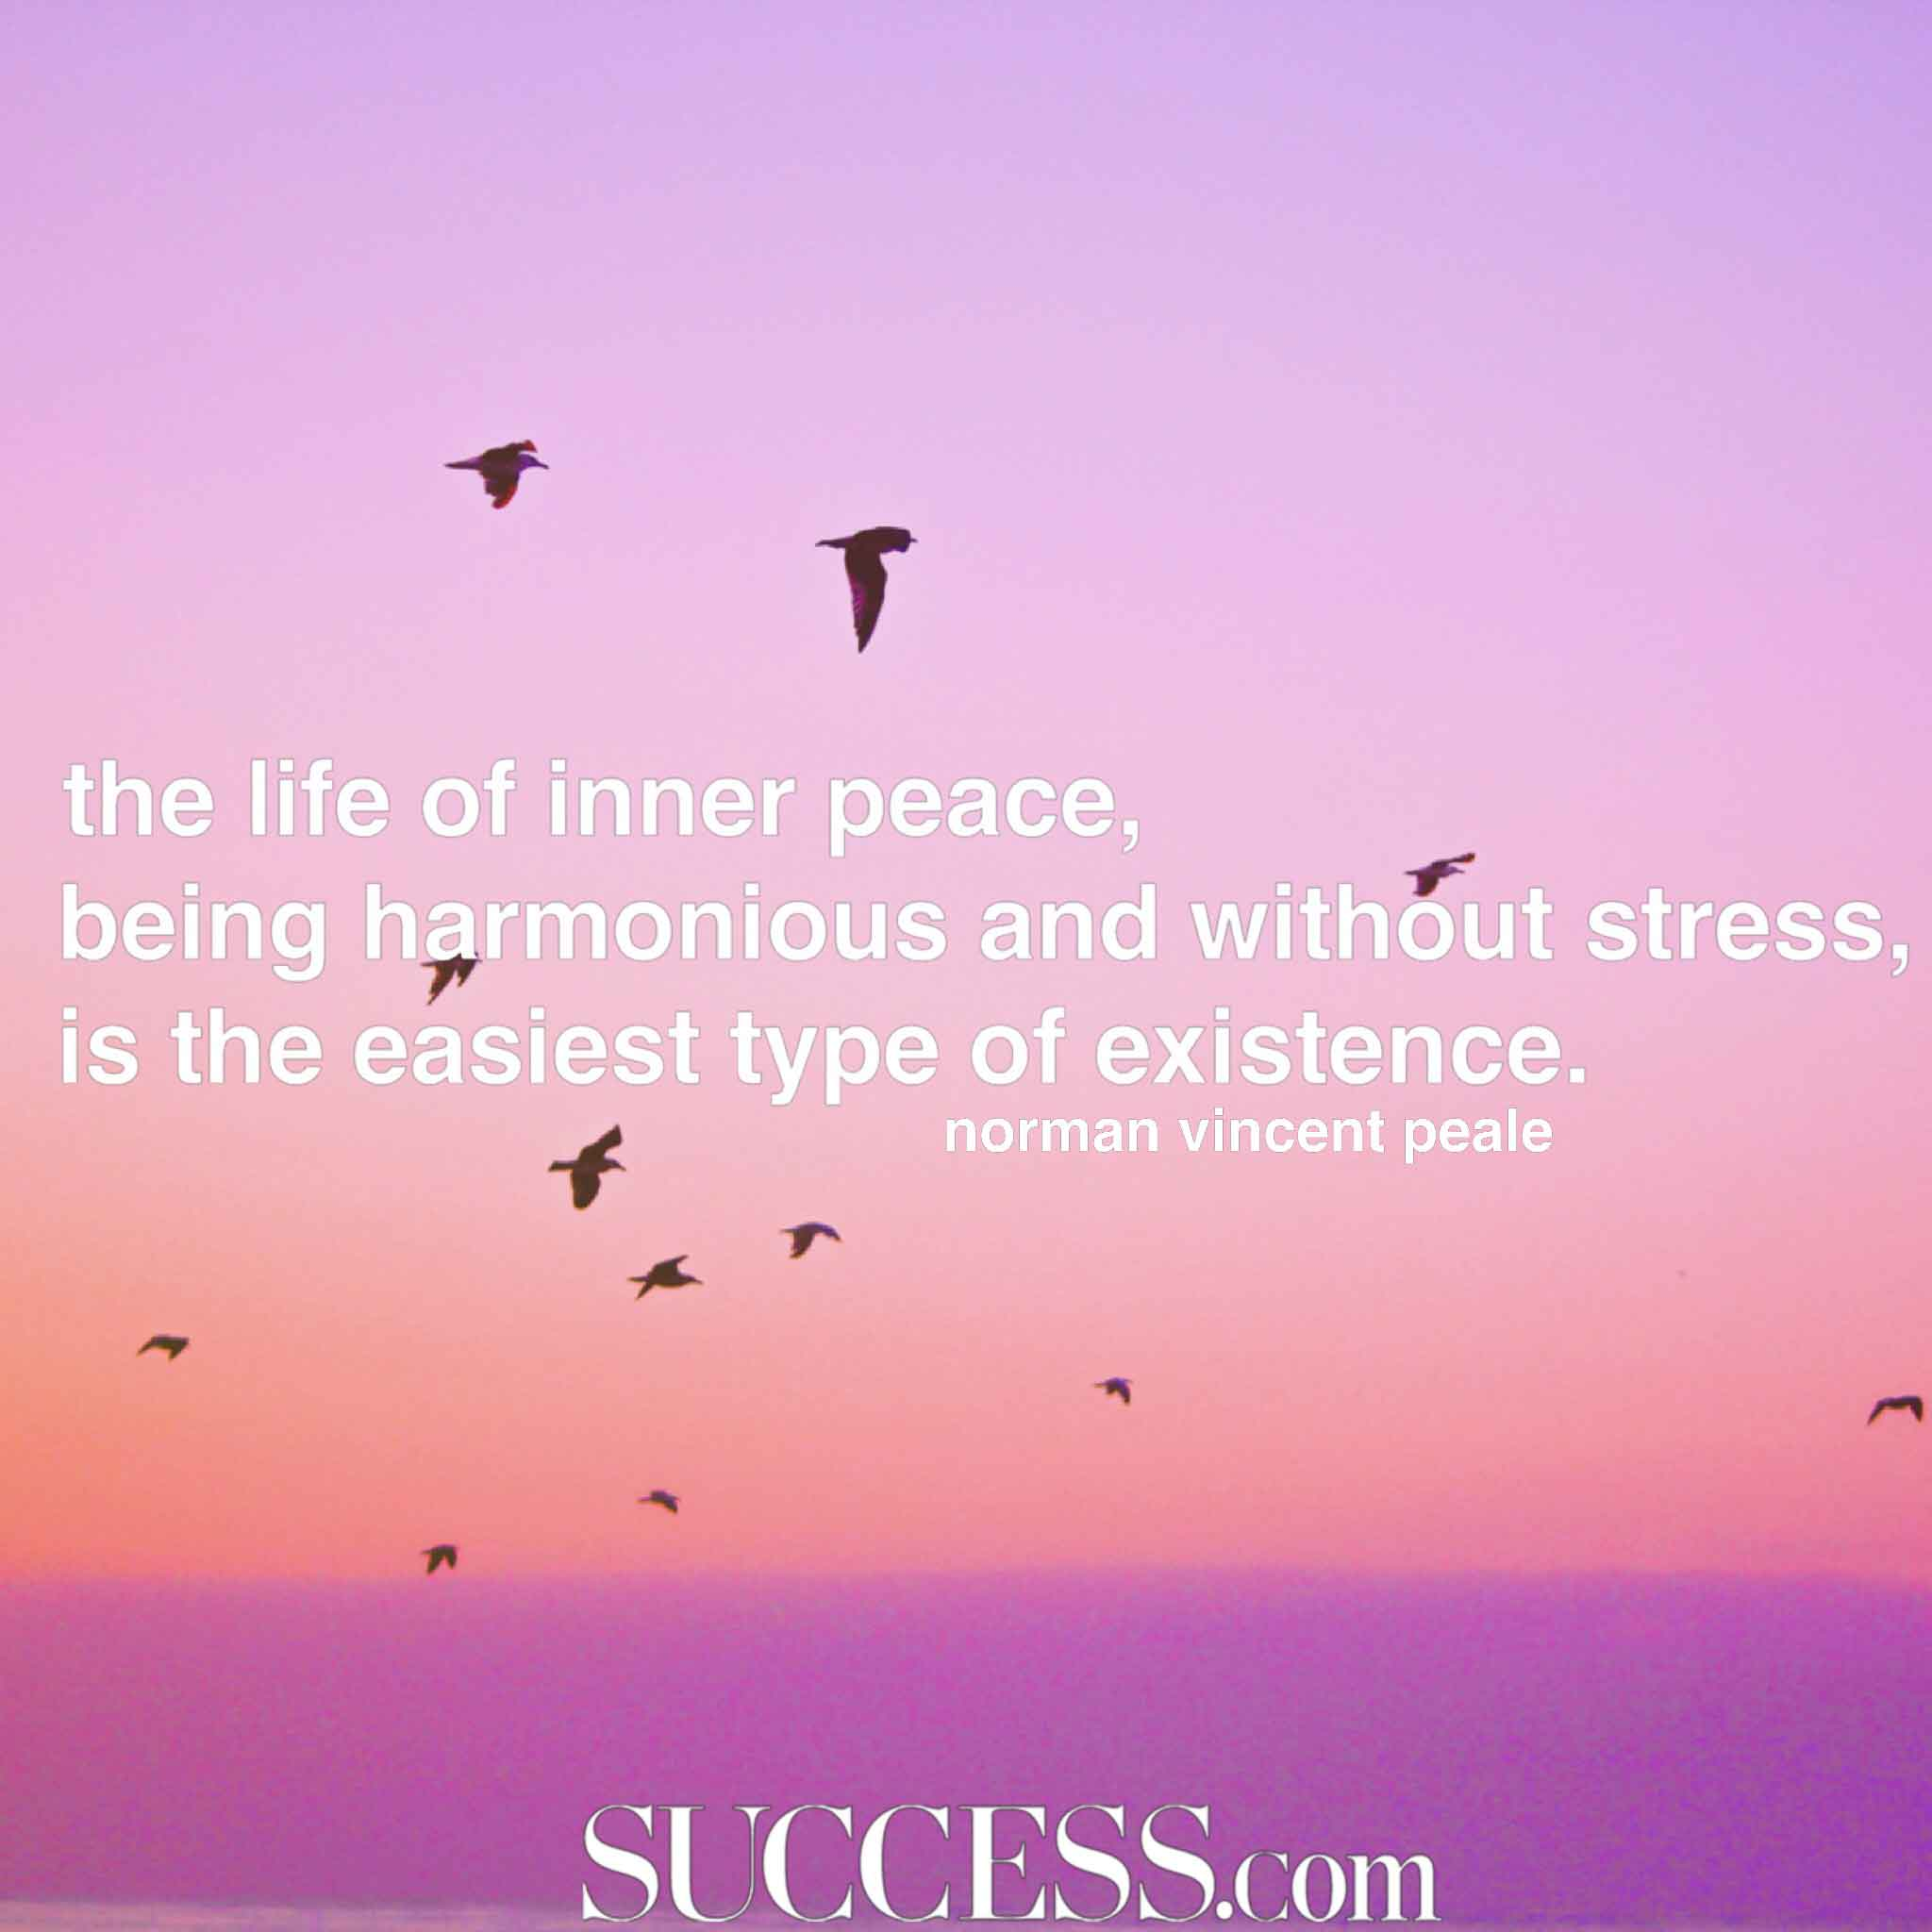 Peace And Quiet Quotes | 17 Quotes About Finding Inner Peace